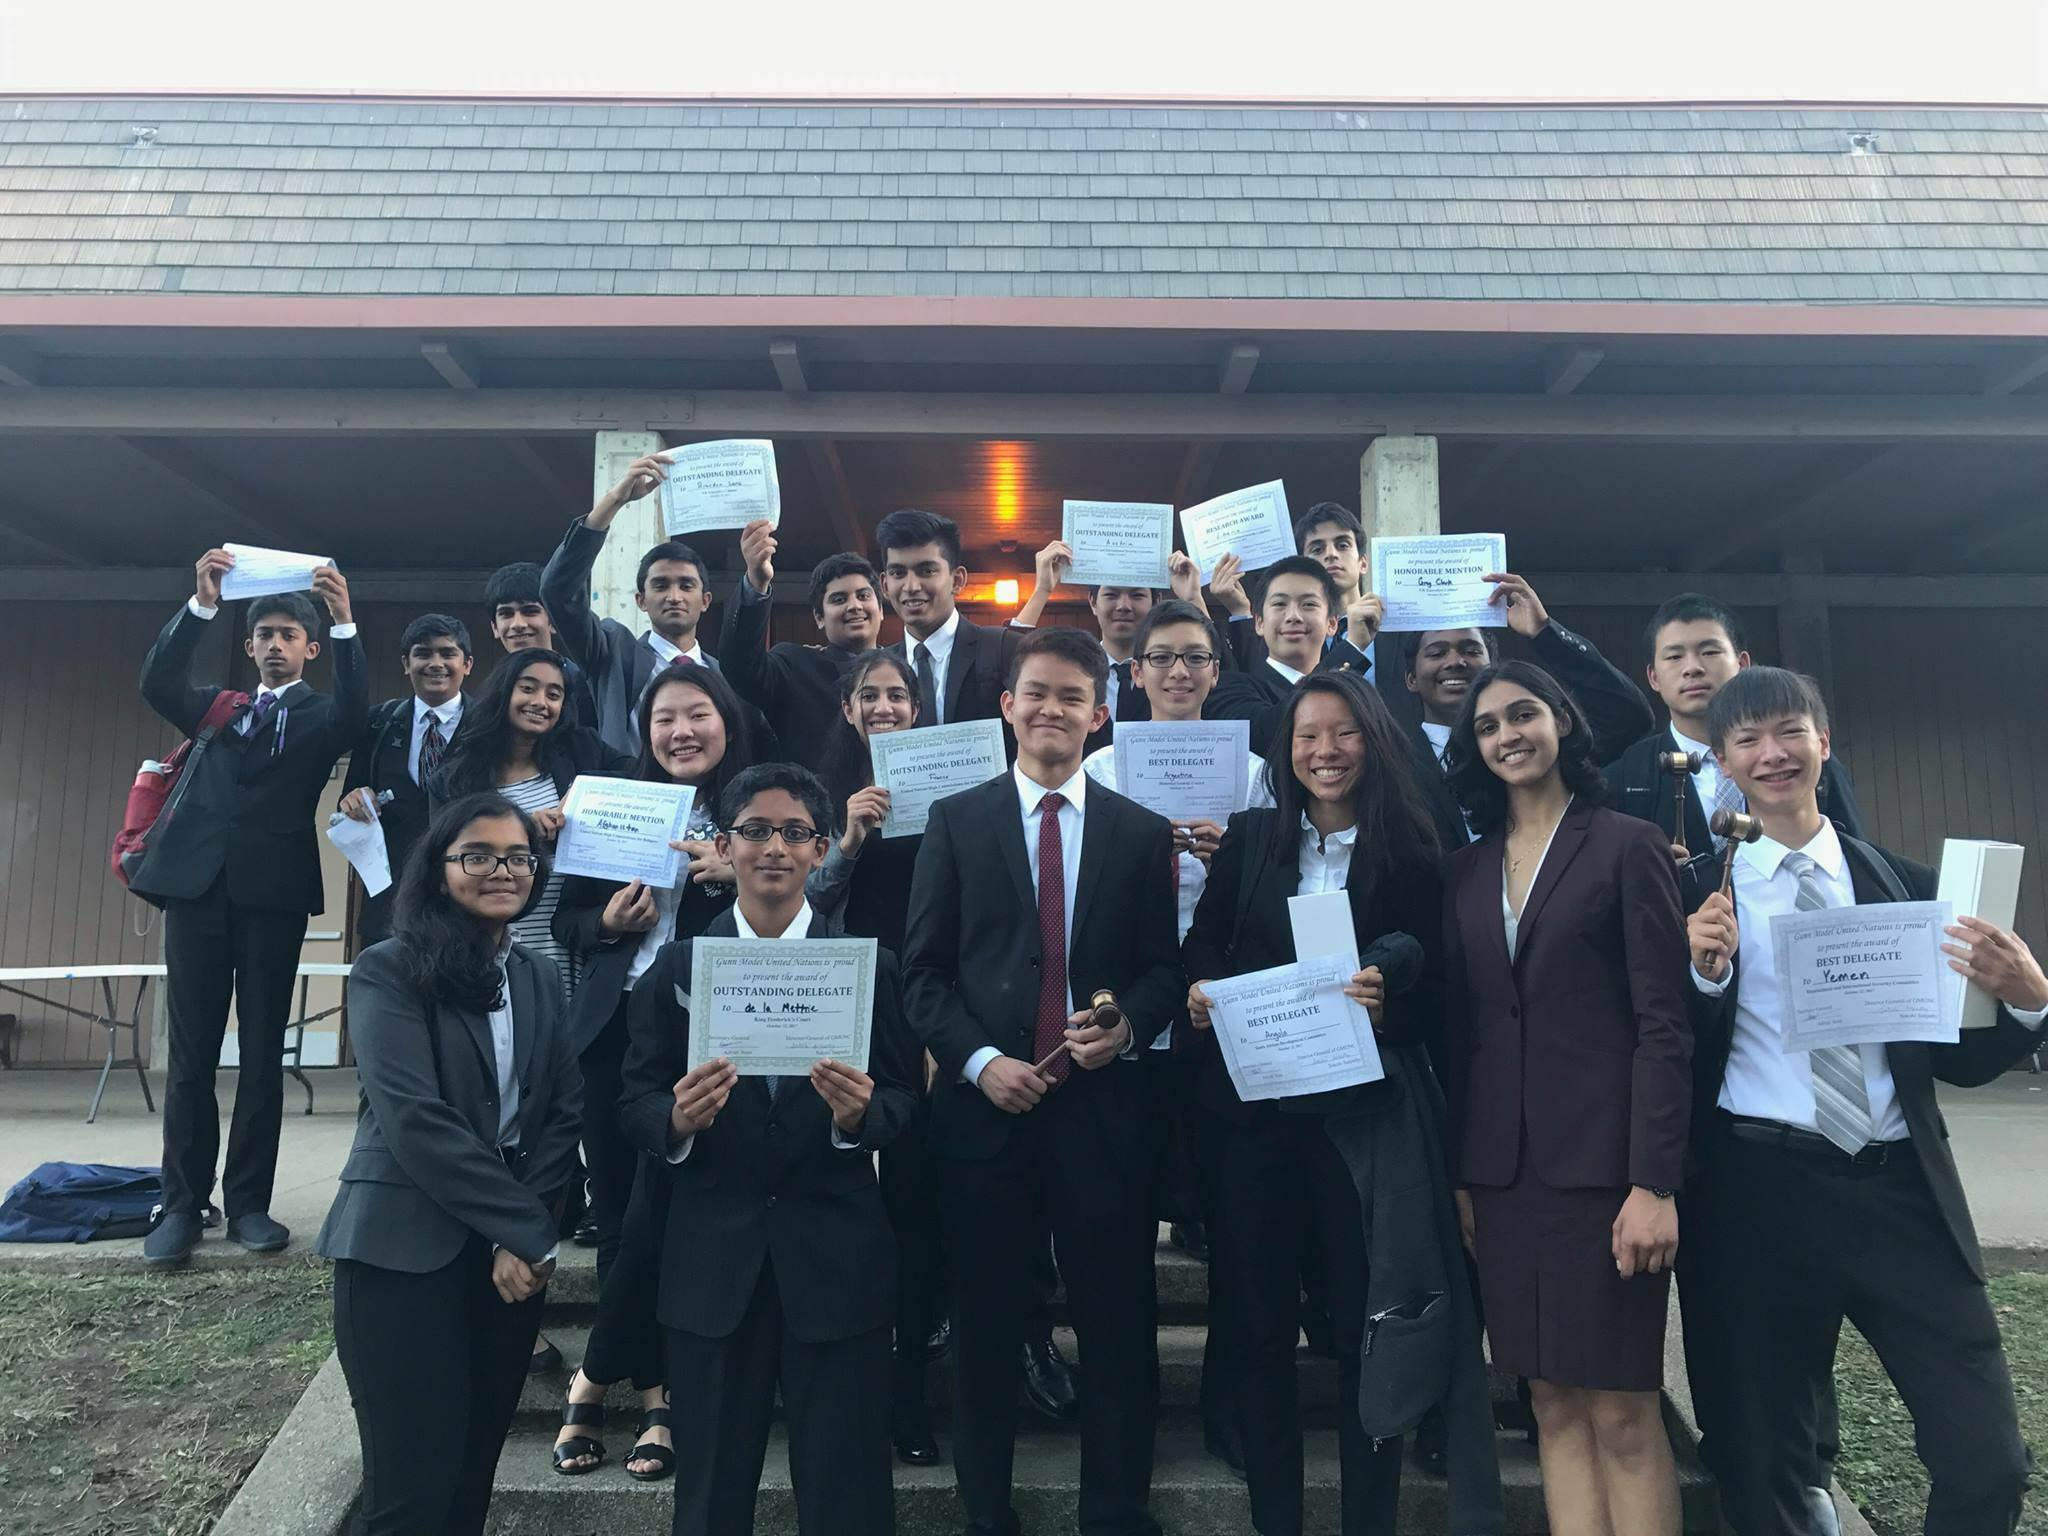 The MVHS MUN delegation poses with their awards after the GHS conference. The conference was the first of the 2017-2018 school year. Photo used with permission from Amit Chandramouly.